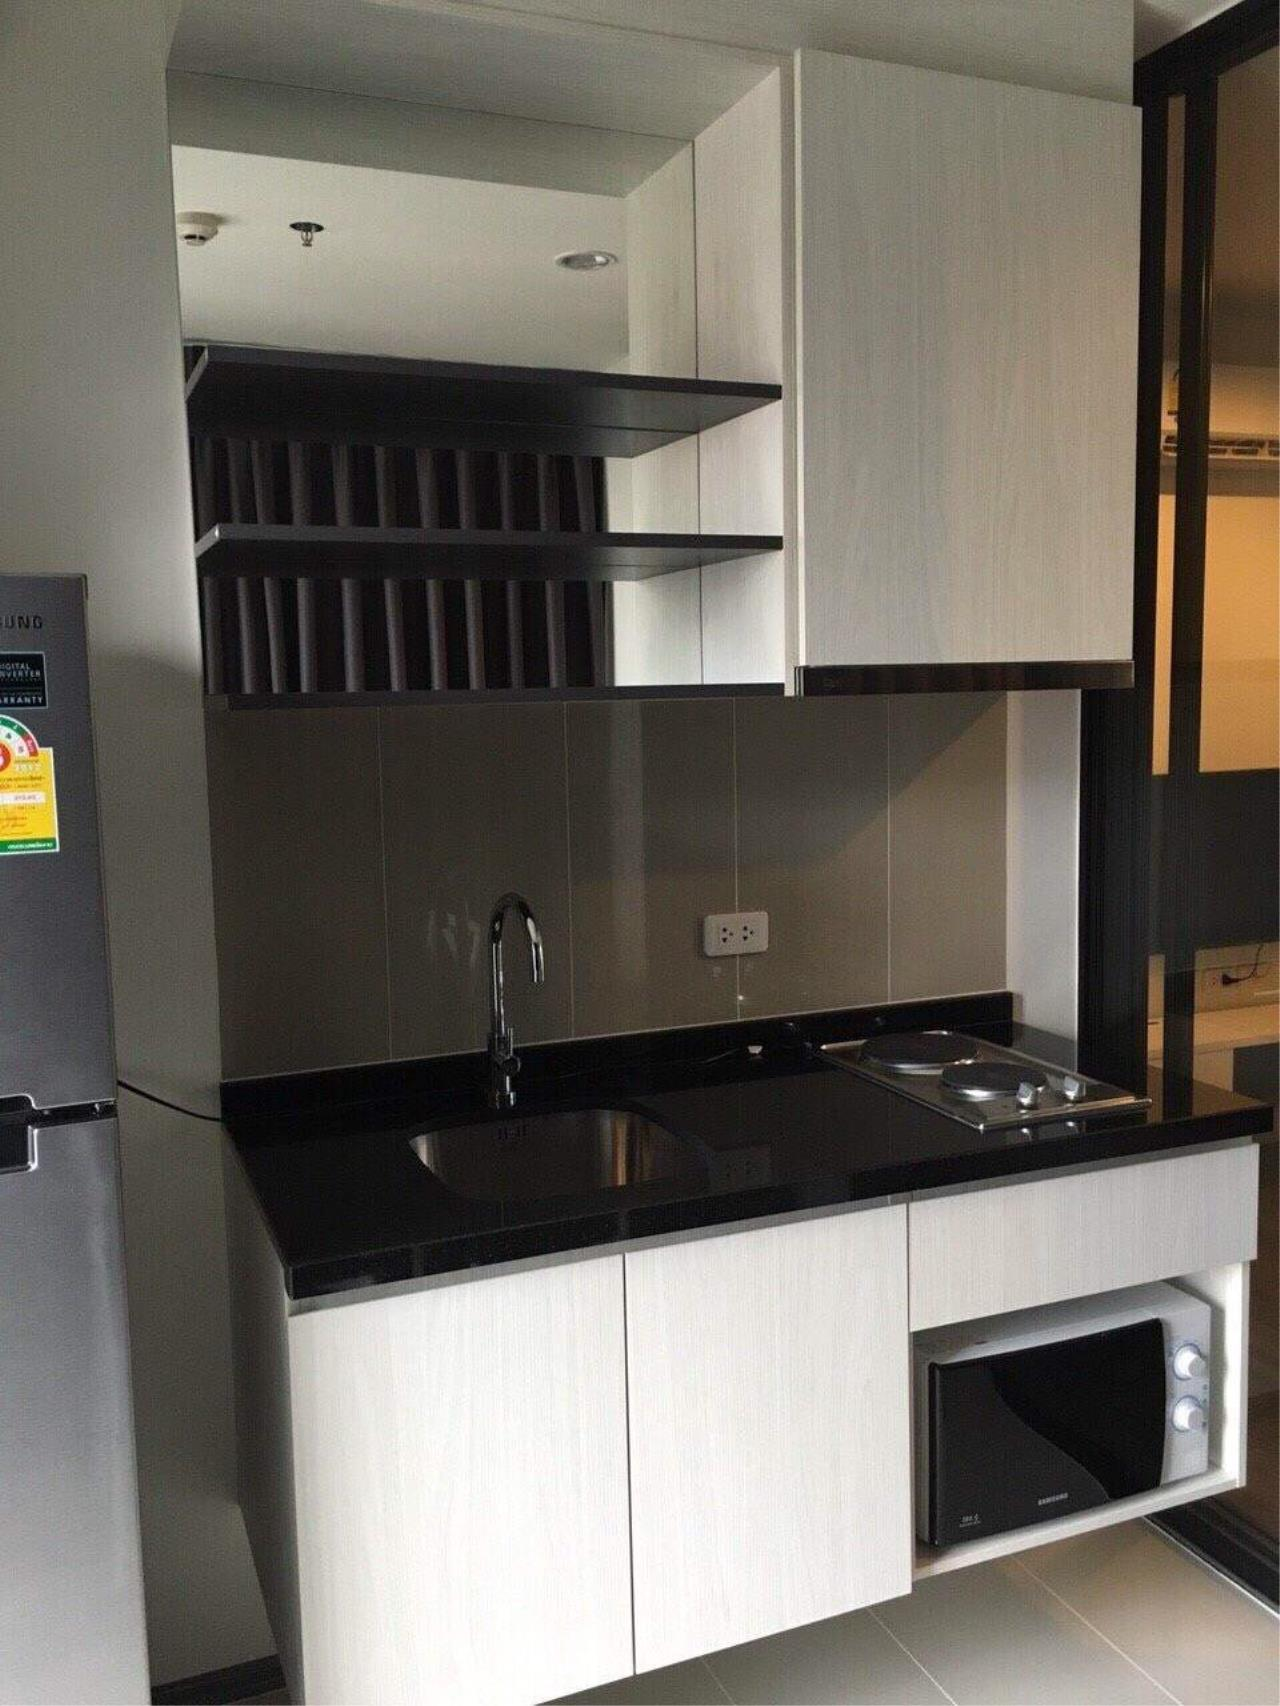 RE/MAX All Star Realty Agency's Basepark East One-Bed full furnished for rent 15,000 Baht neg (BTS On Nut) 10